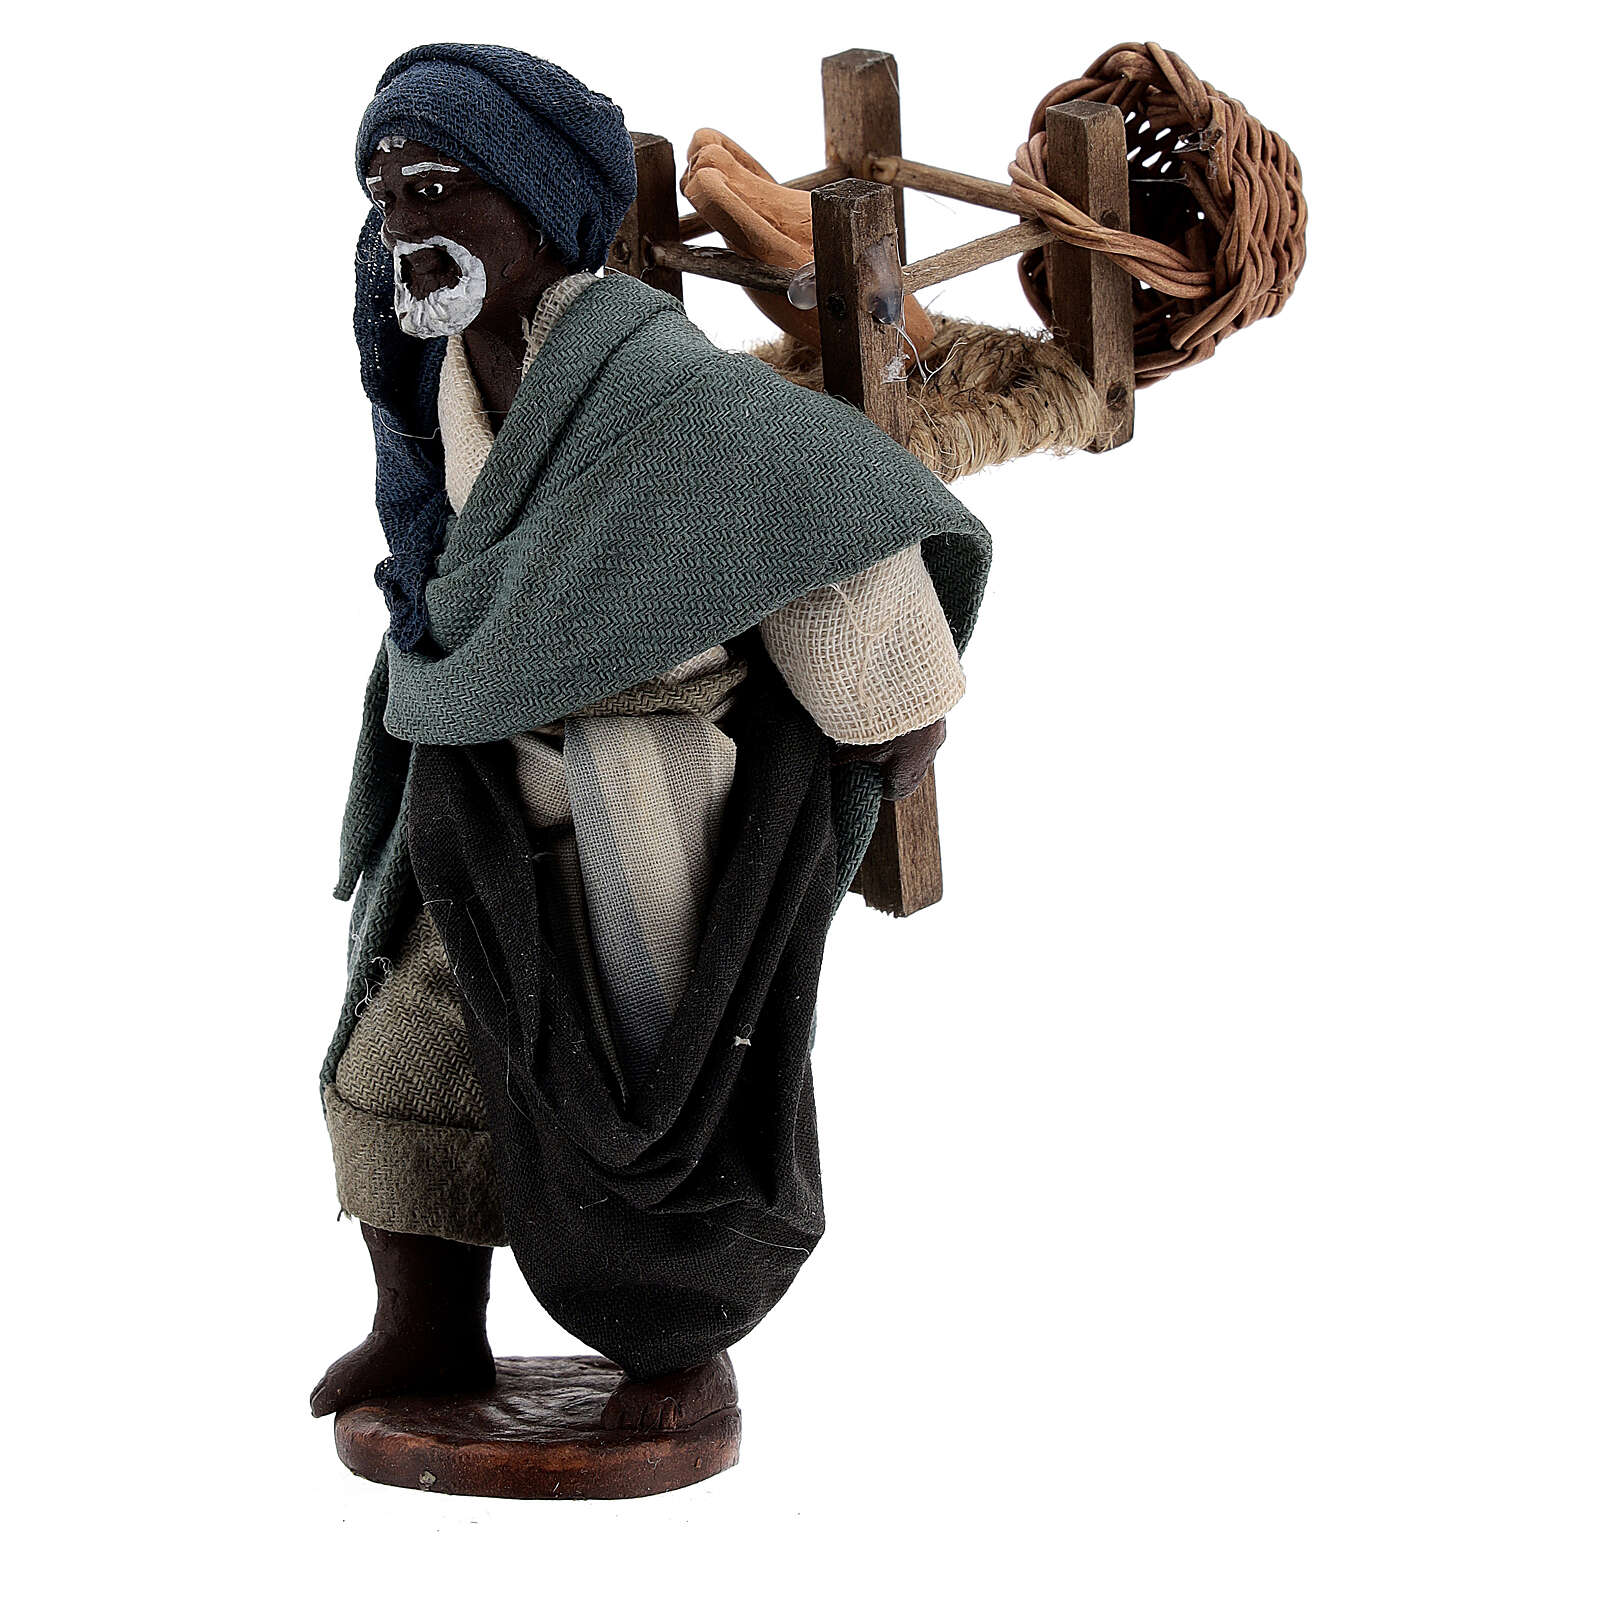 Traveling moor man Neapolitan nativity scene 10 cm 4